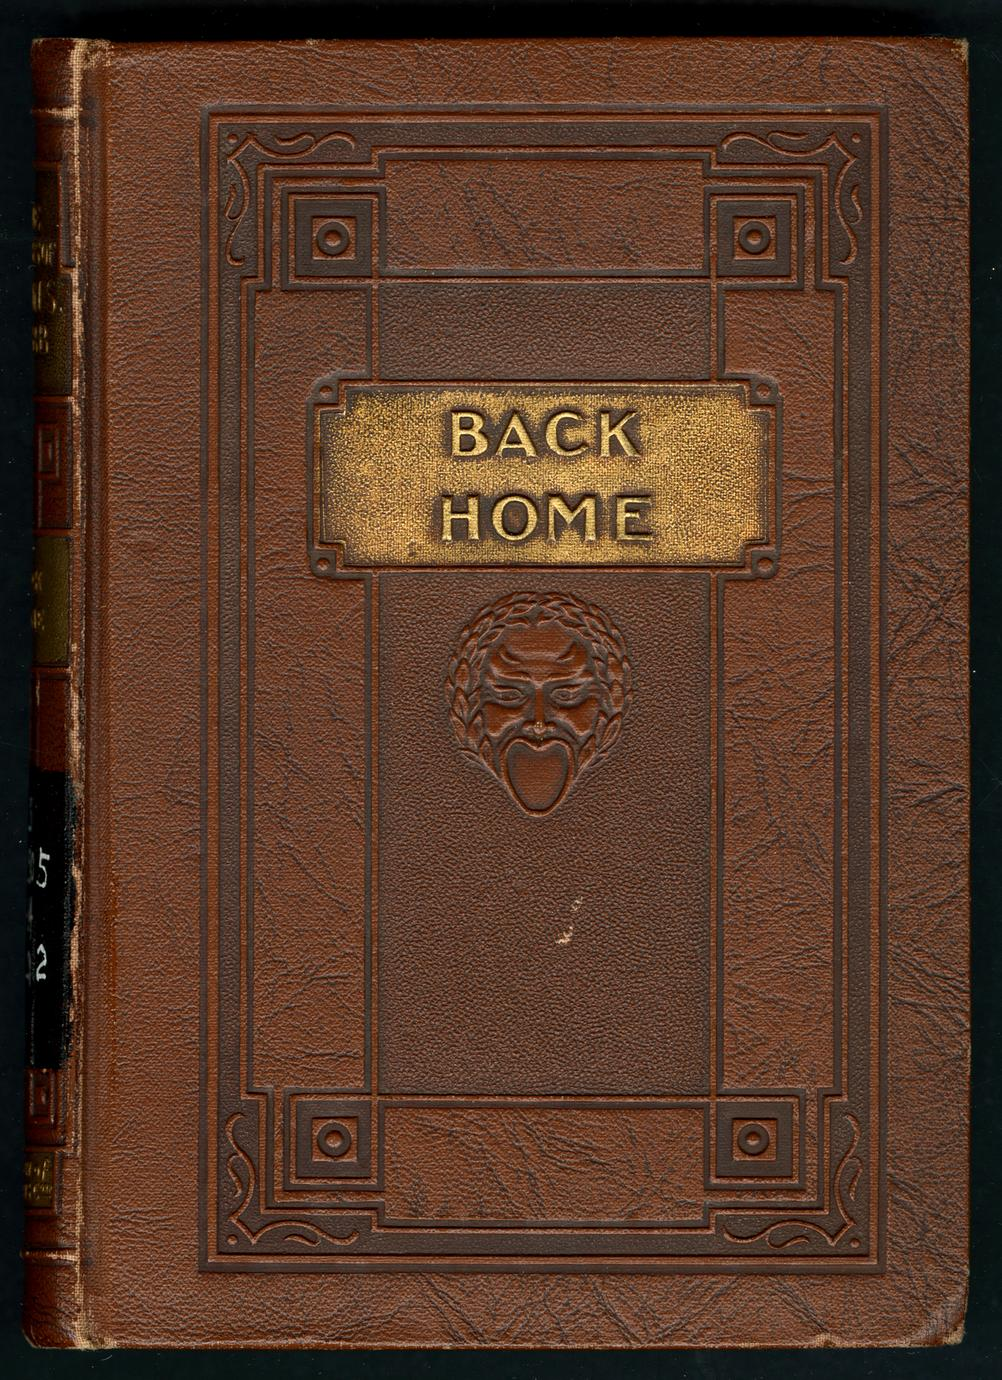 Back home : being the narrative of Judge Priest and his people (1 of 2)